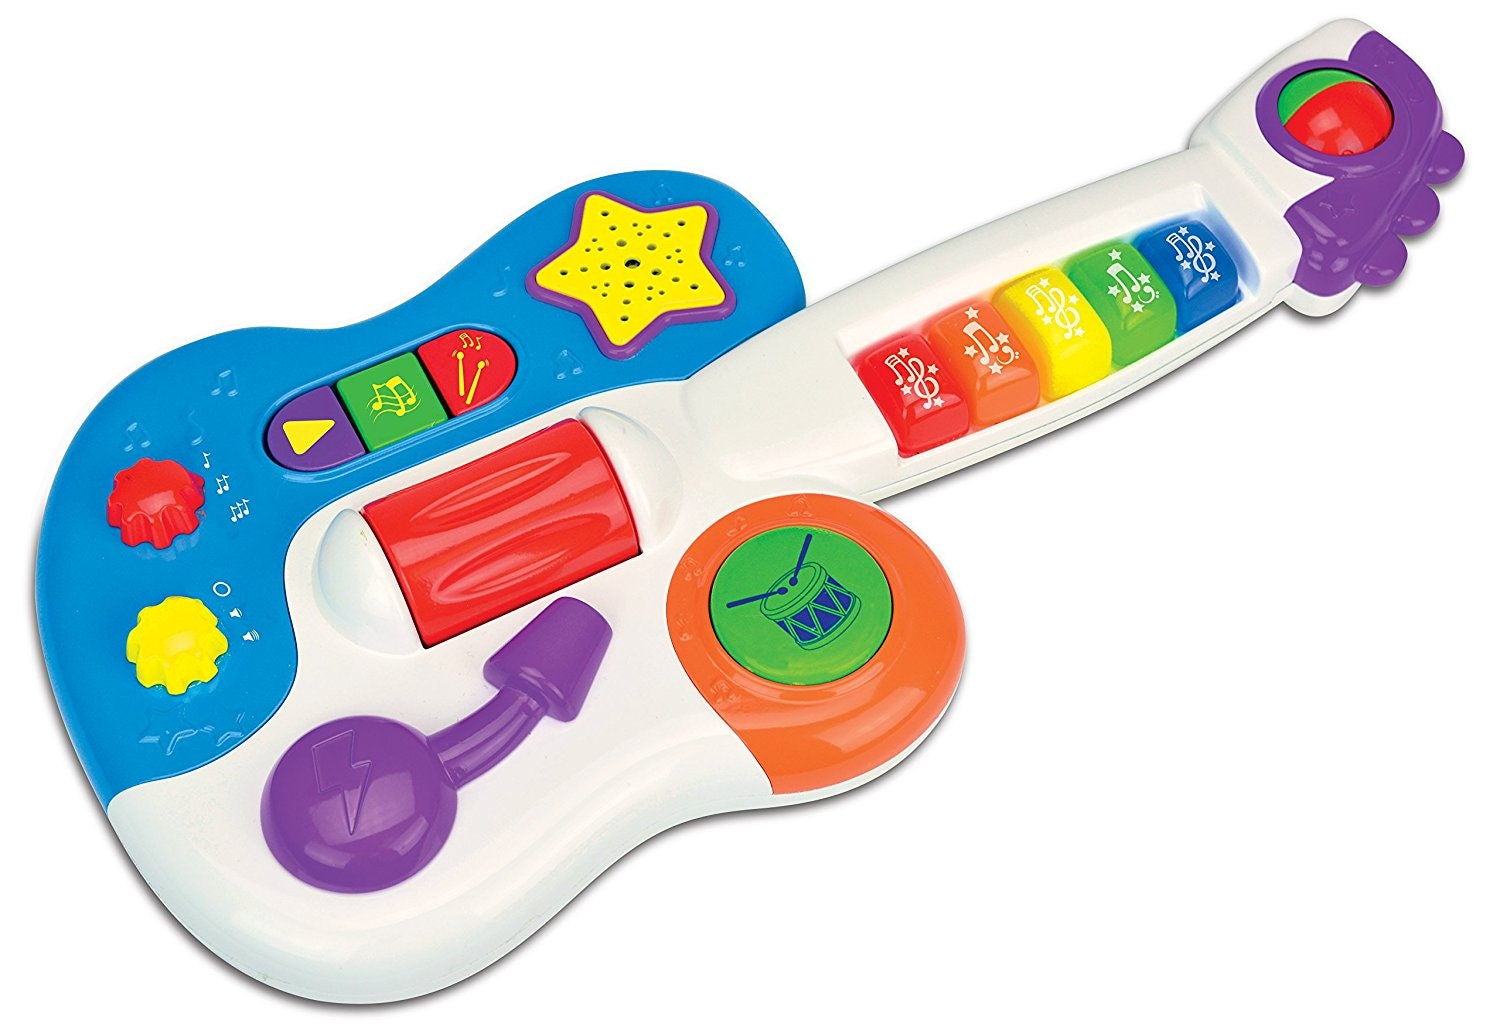 Toy Guitar Target The Best Amazon Black Friday Deals On Toys